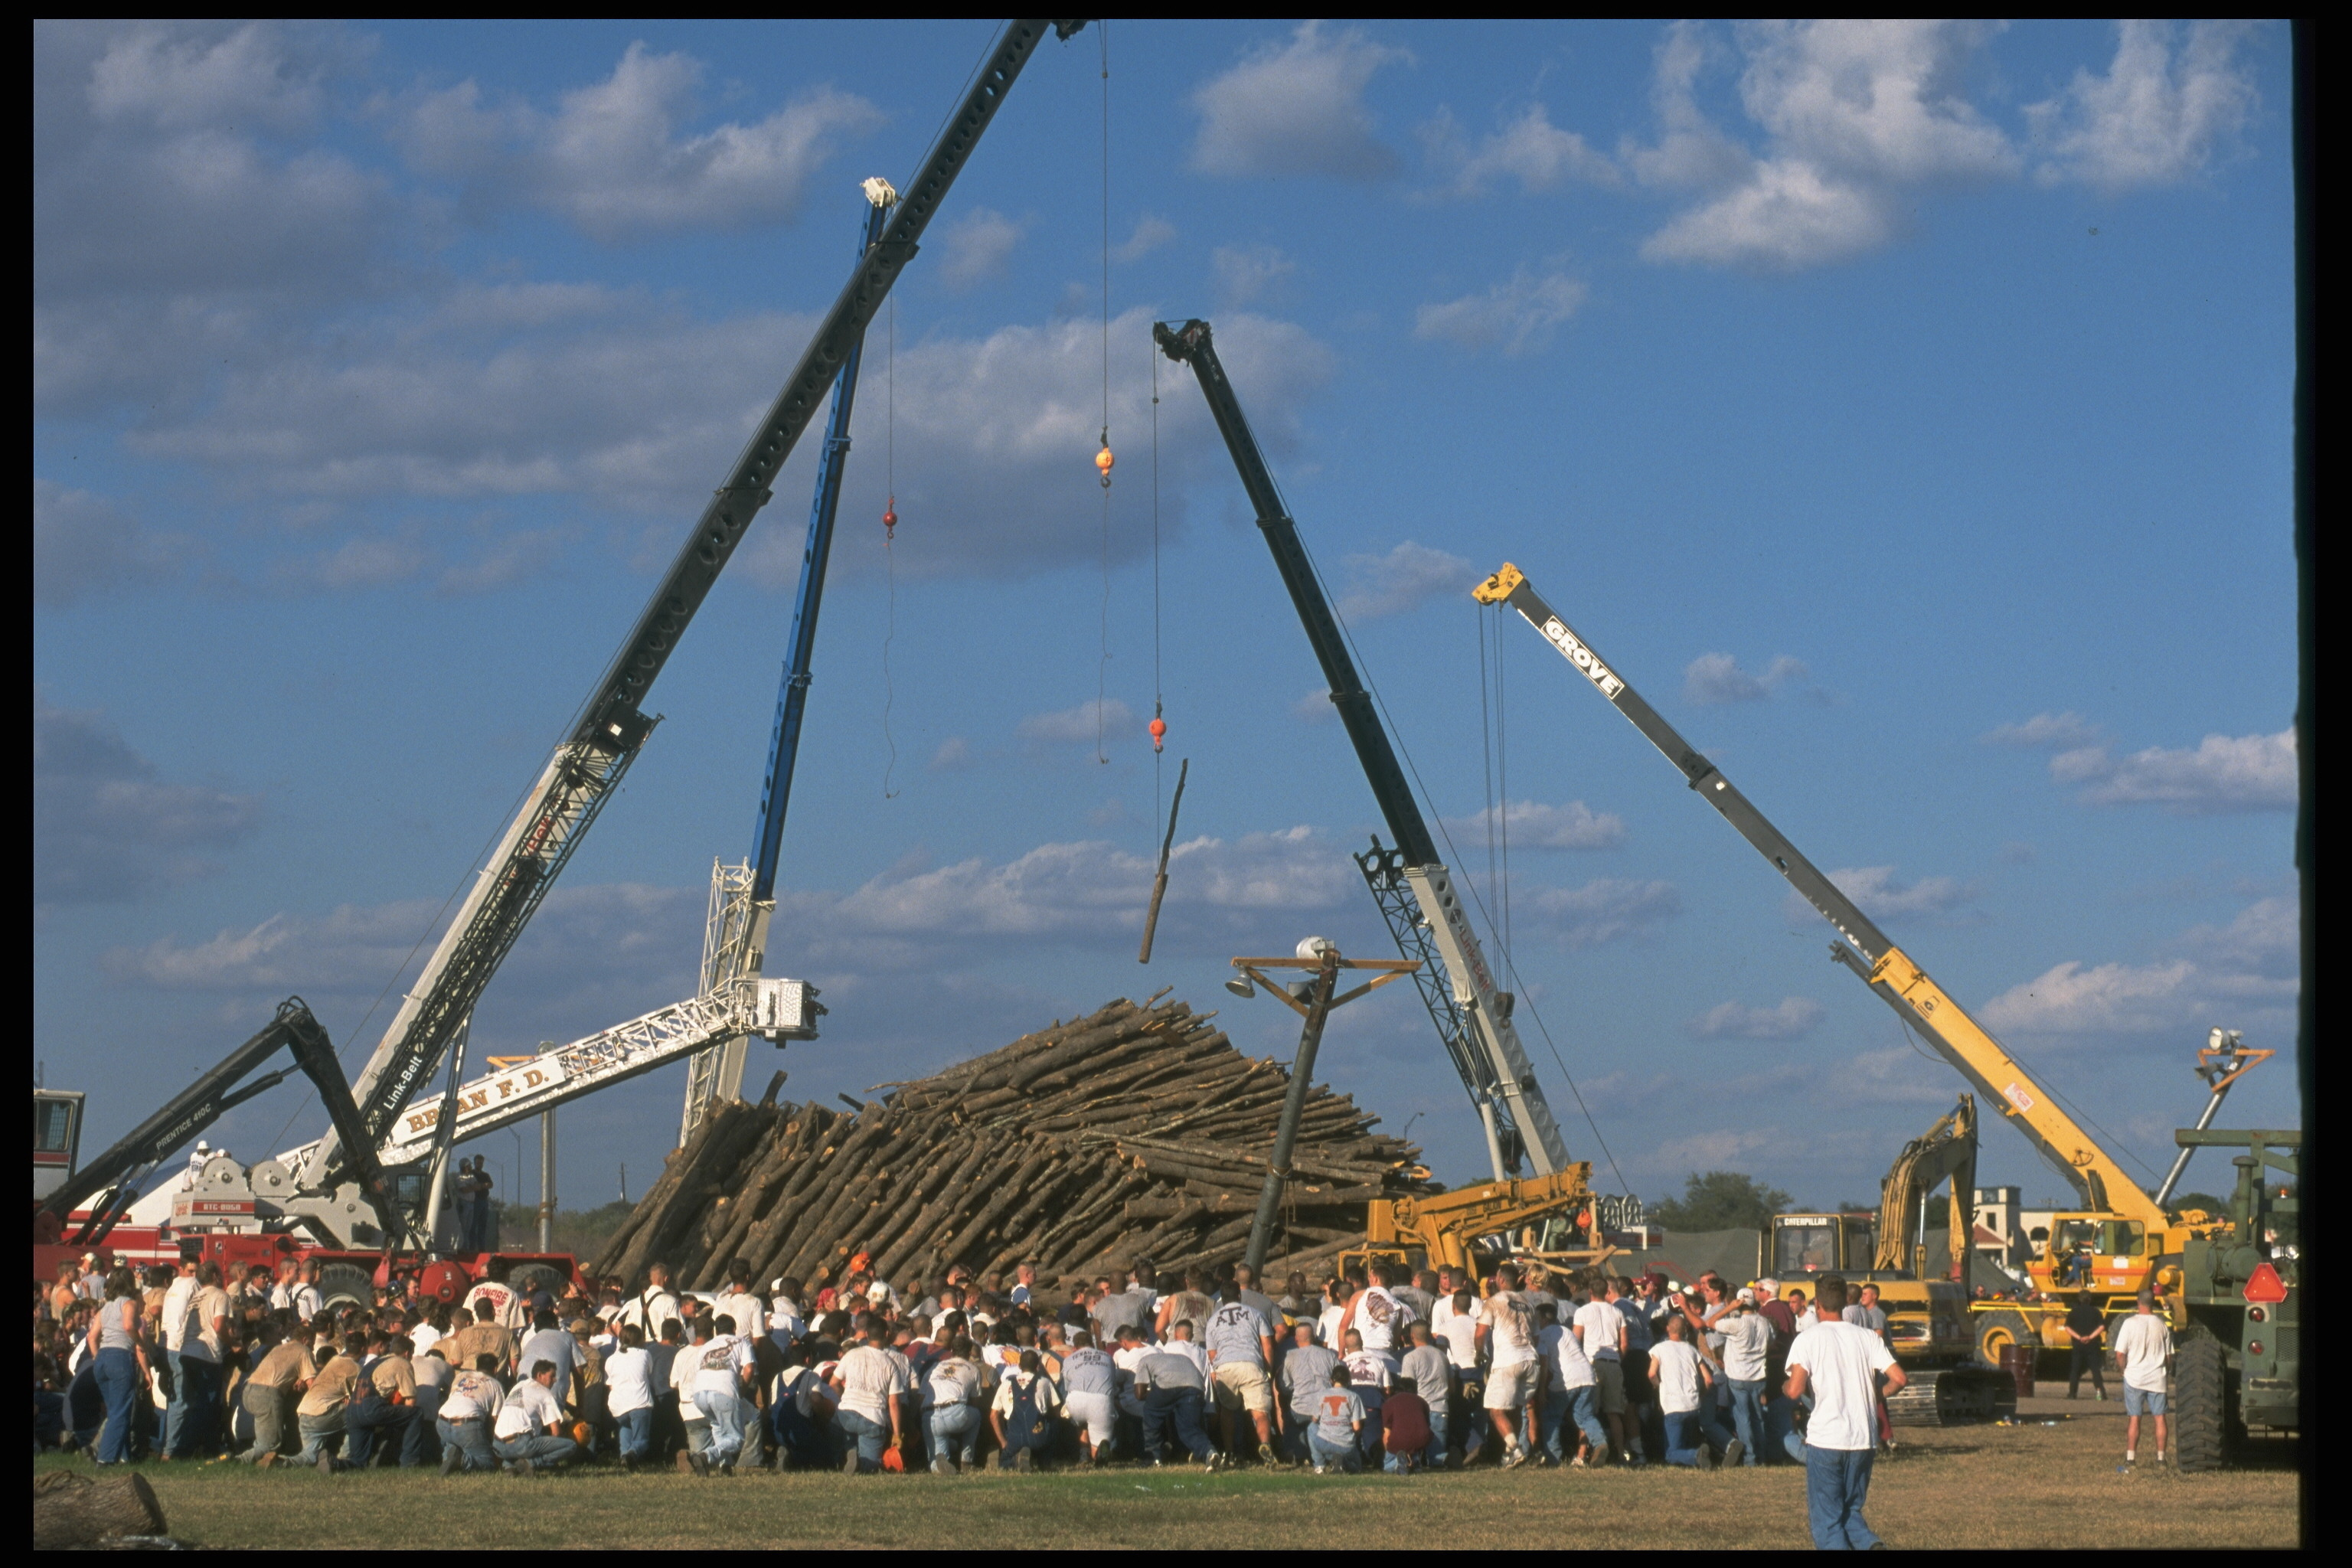 The 1999 tragedy led Texas A&M officials to put an end to the Aggie Bonfire tradition on campus in College Station. | Robert Daemmrich Photography Inc/Sygma via Getty Images)